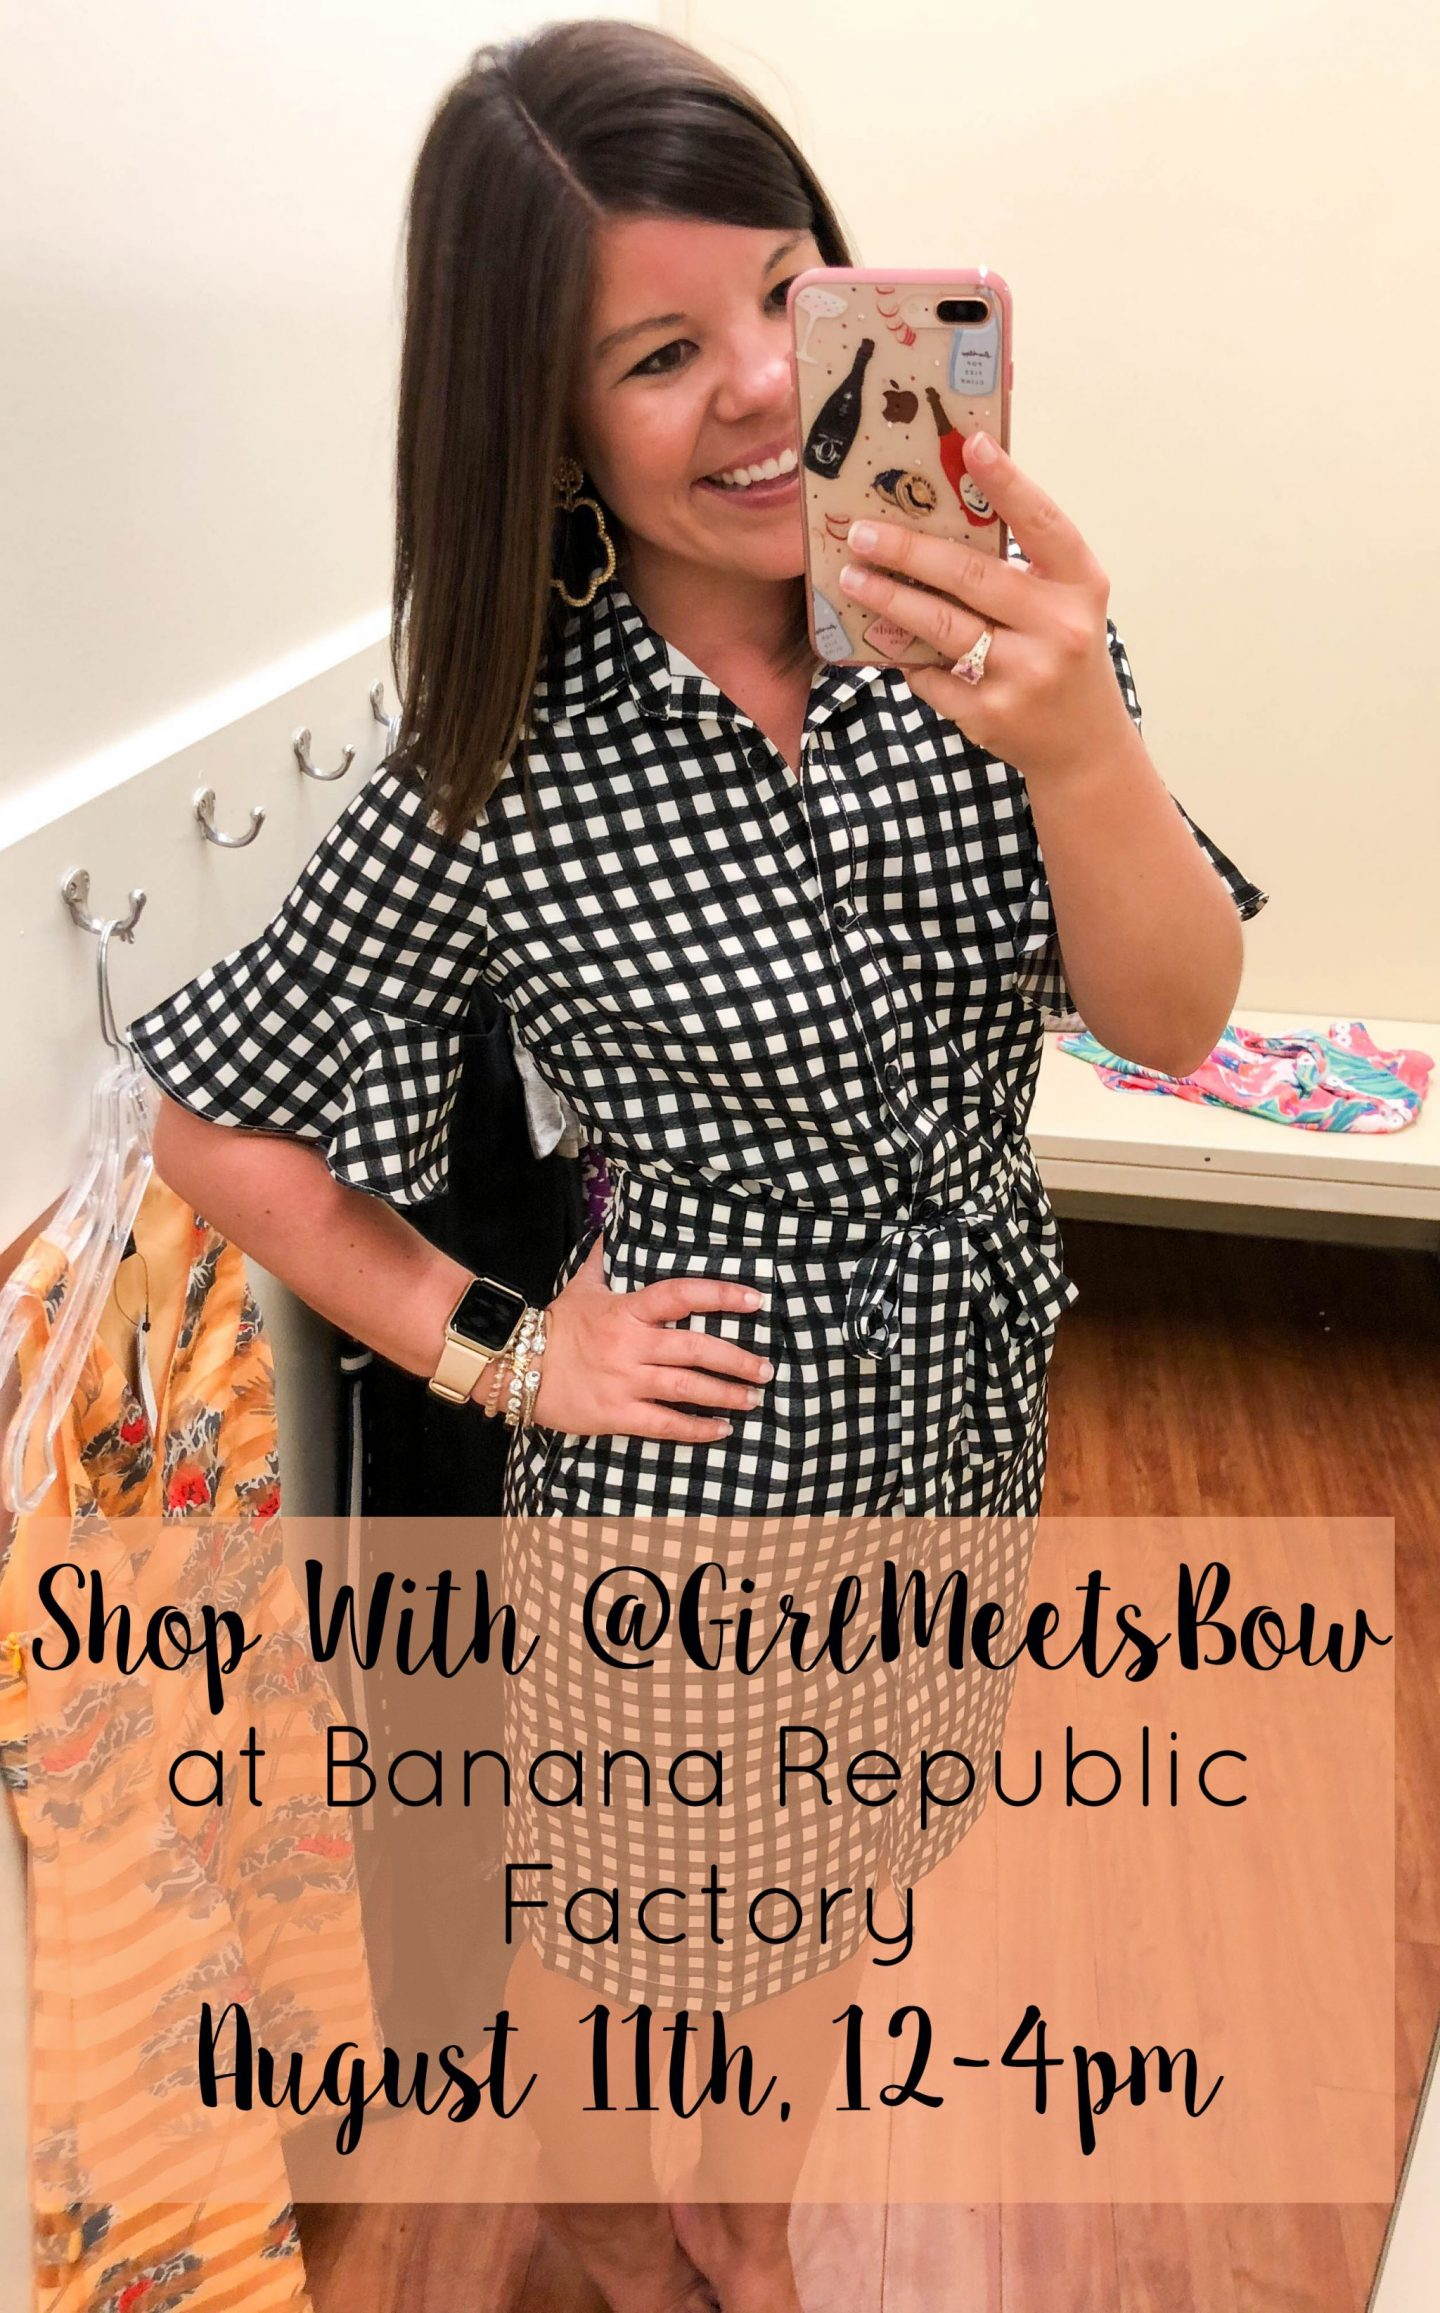 Shop With Me at Banana Republic Factory!